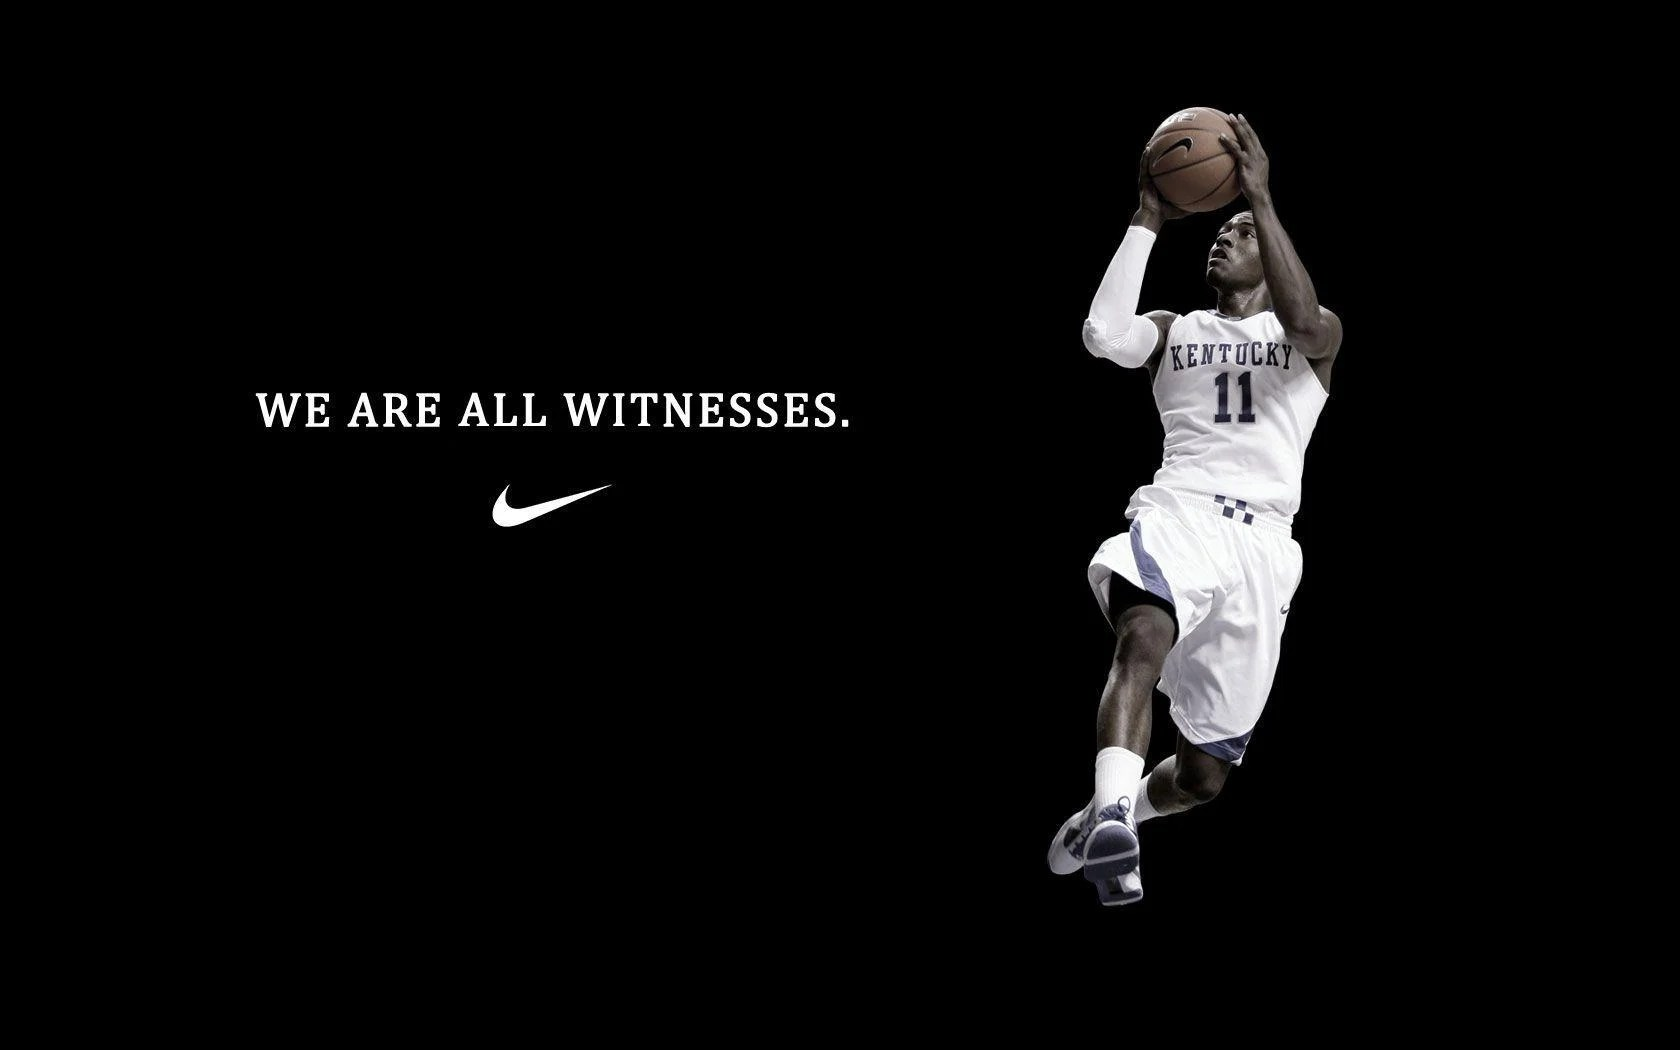 HD Wallpapers Basketball   Wallpaper Cave Nike Quotes Wallpaper Hd Basketball Hd Images 3 HD Wallpapers